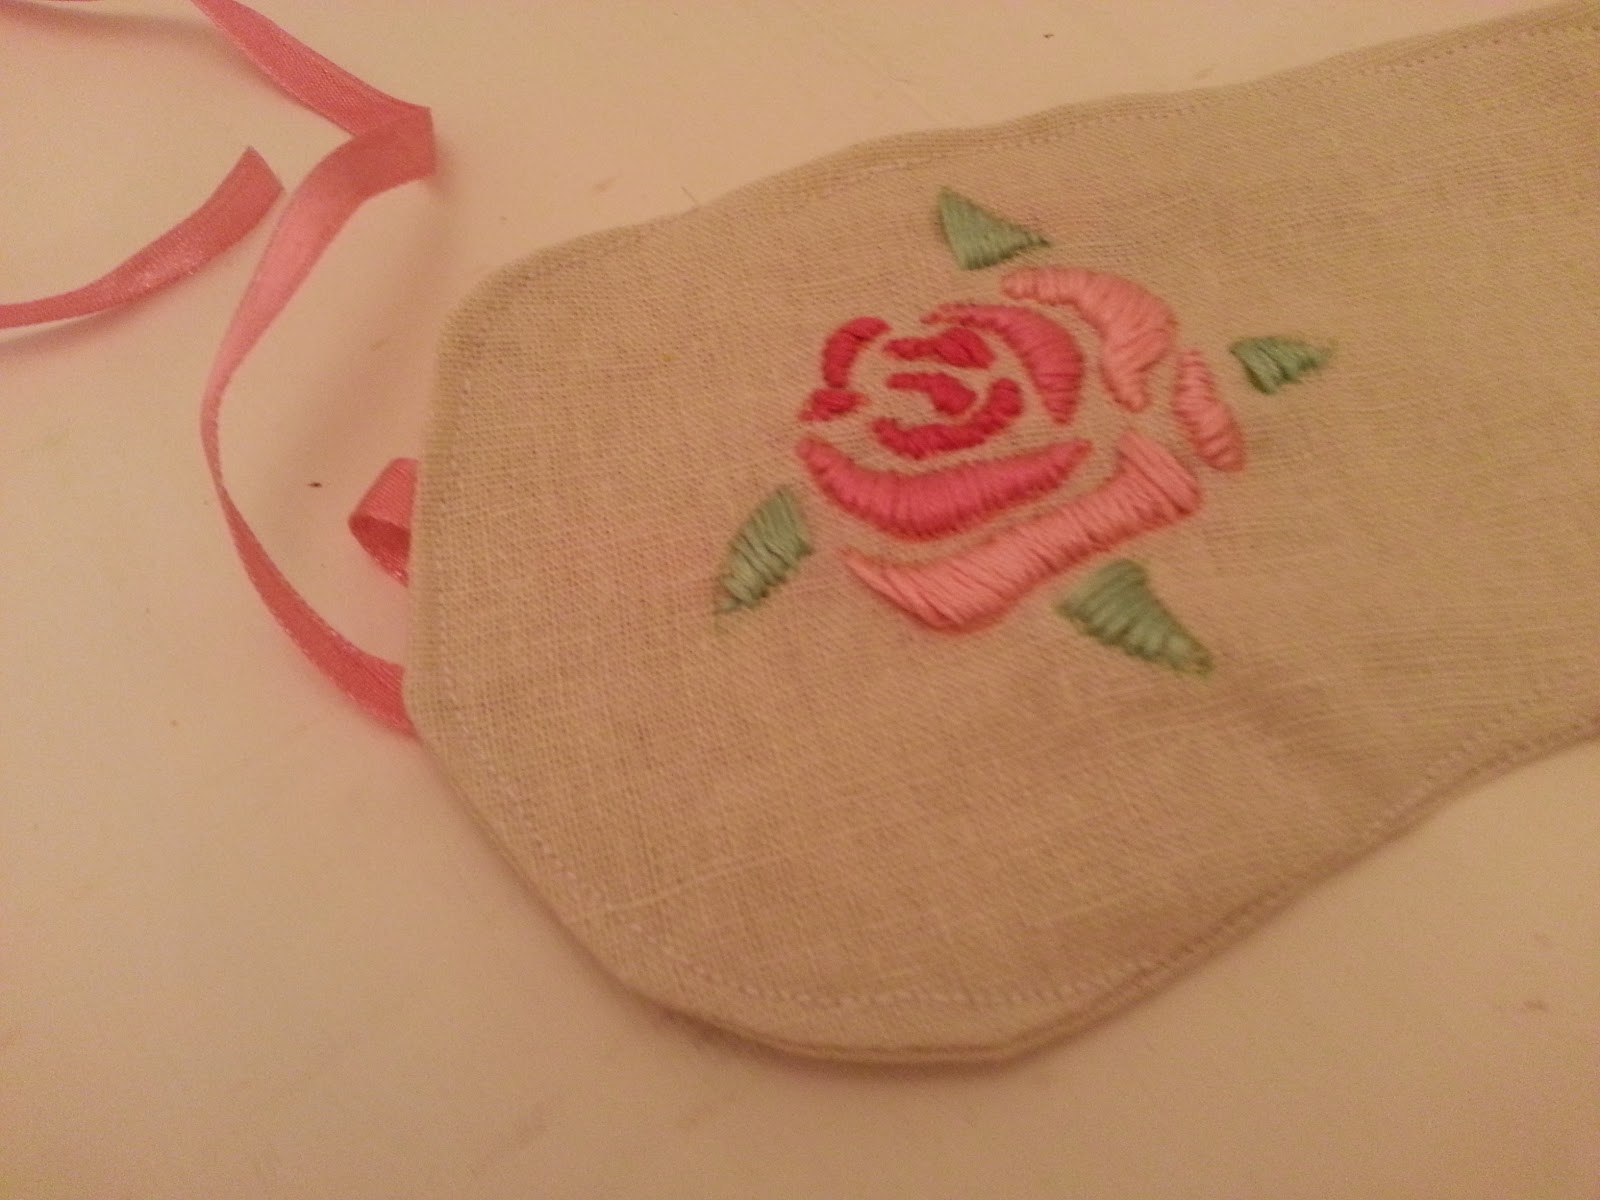 Rose Embroidery Eye Mask And Pattern Twigg Studios Someday Pink Floral Top Then I Turned It The Right Way Slid Ribbon In Gaps At Side Folded Edge Stitched All Around